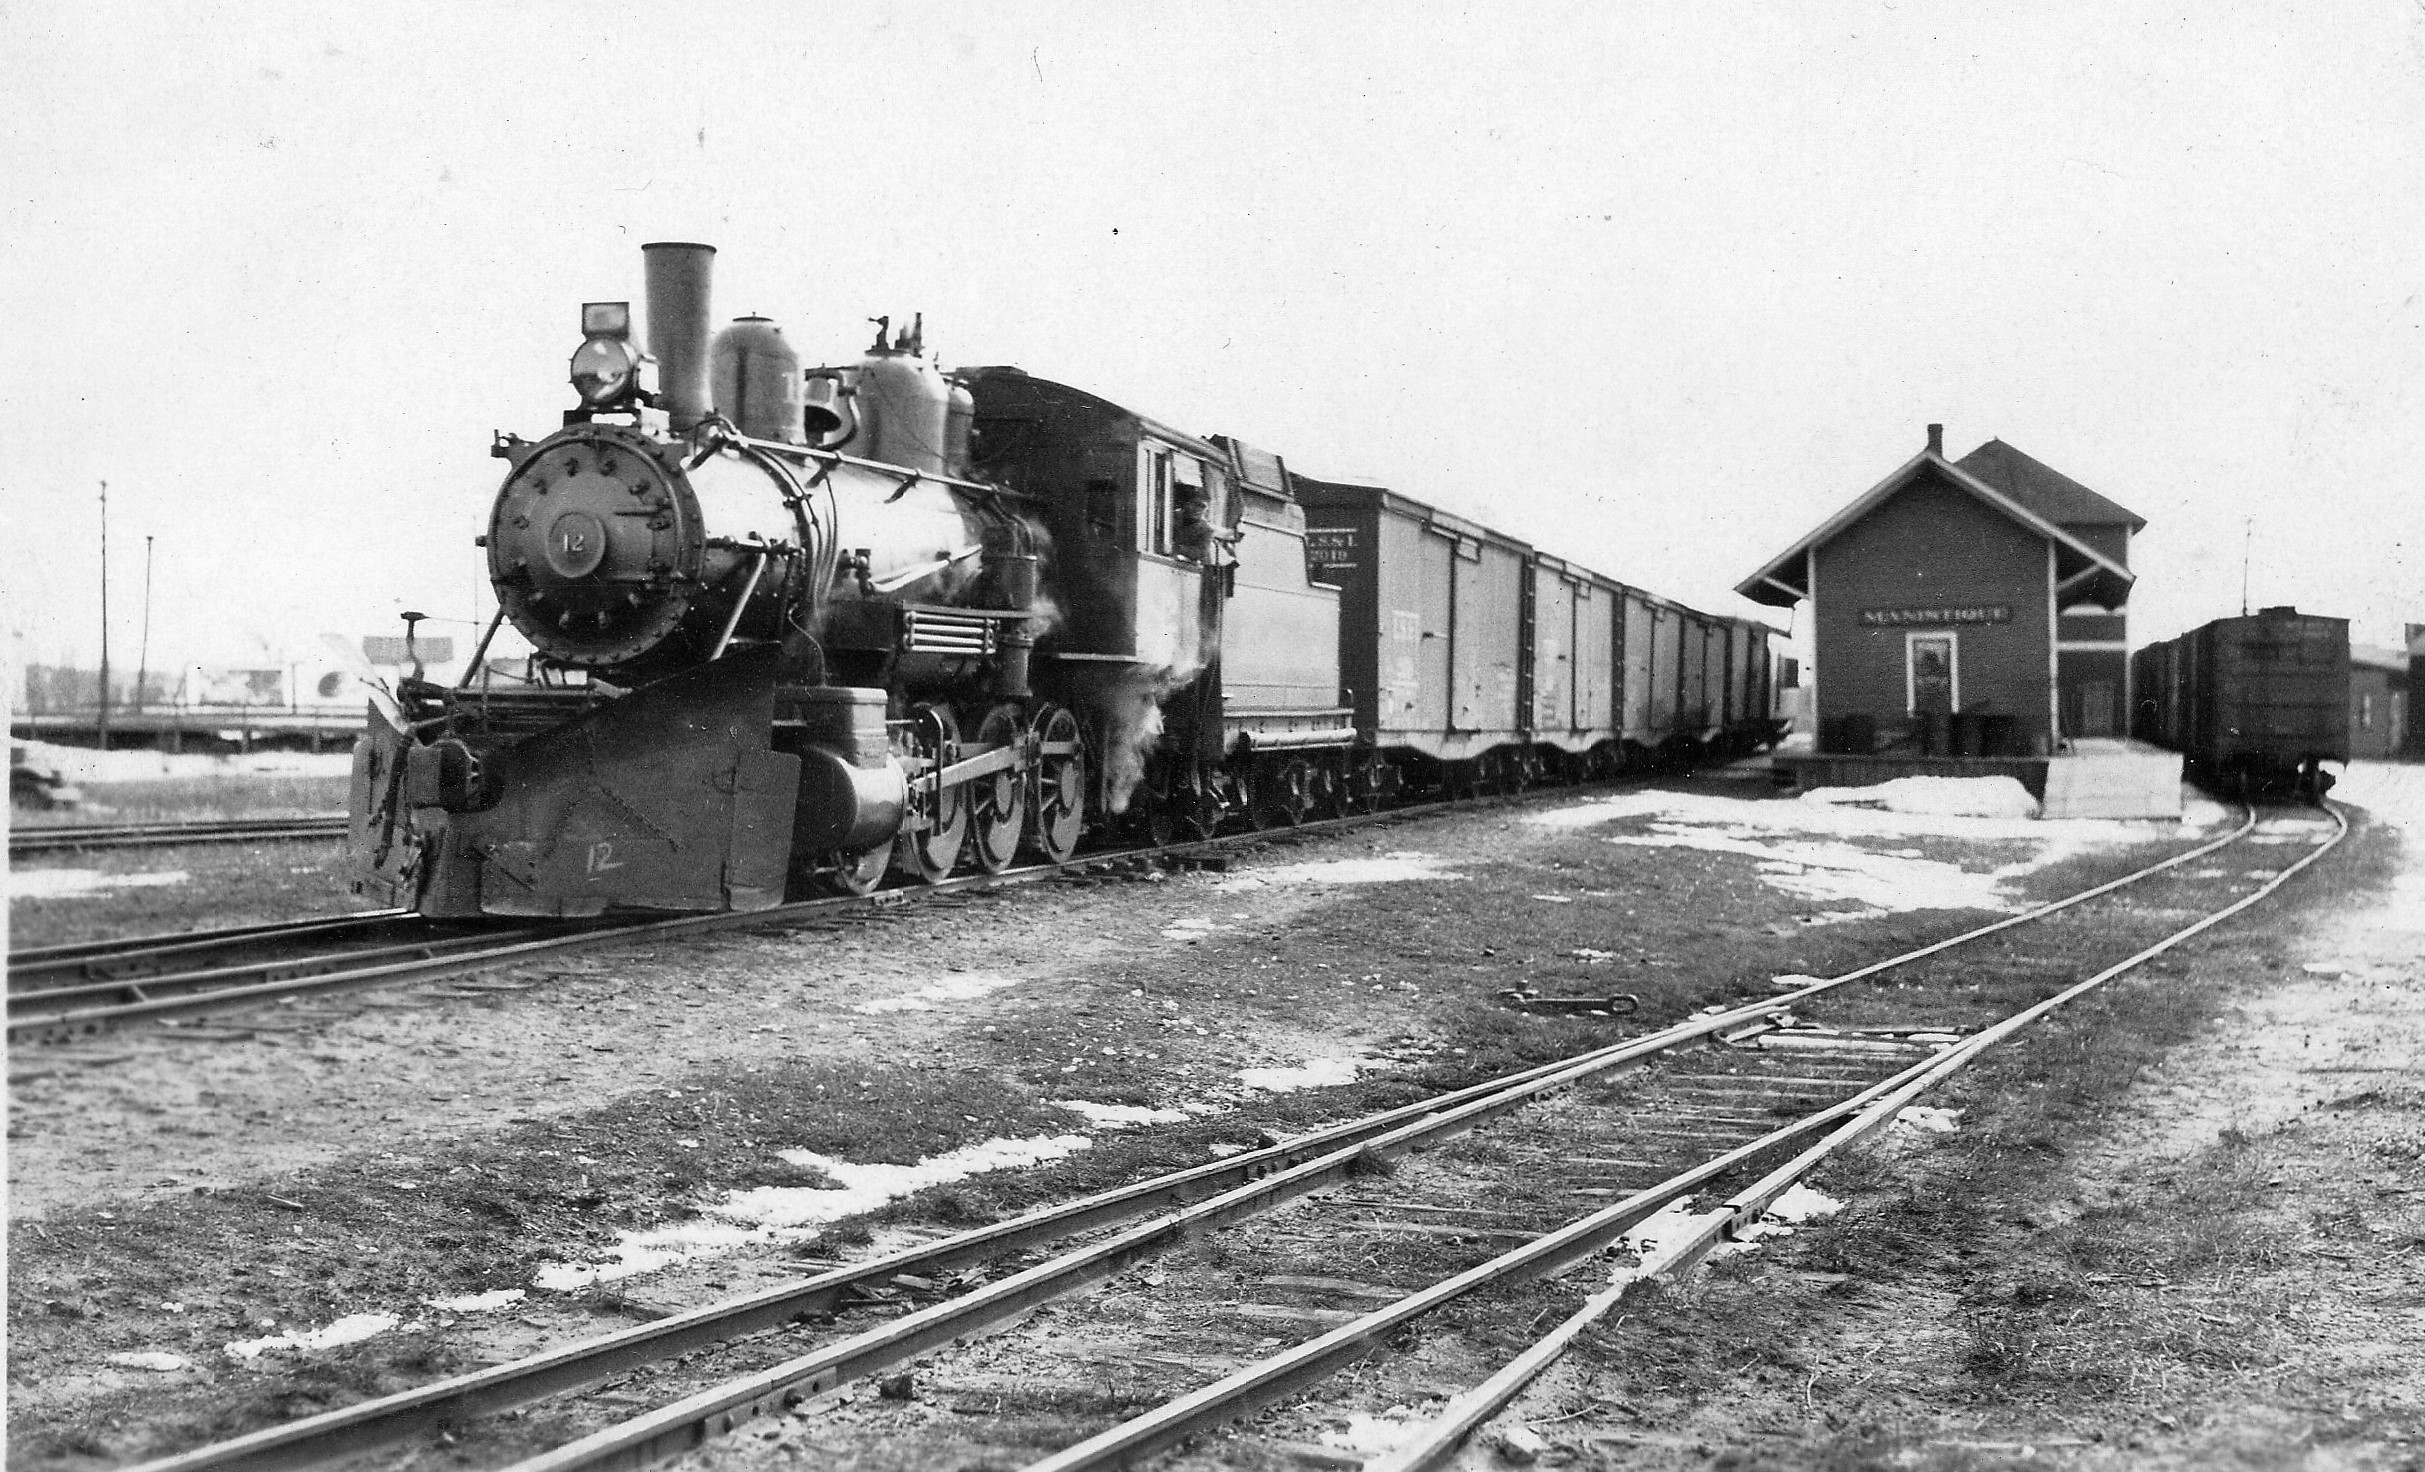 Engine No. 12, March 1932 Image. This locomotive was later renumbered 2370 and was destroyed in the roundhouse fire of 1952.  It was scrapped in 1953. (Niles/Helmka Family Collection)